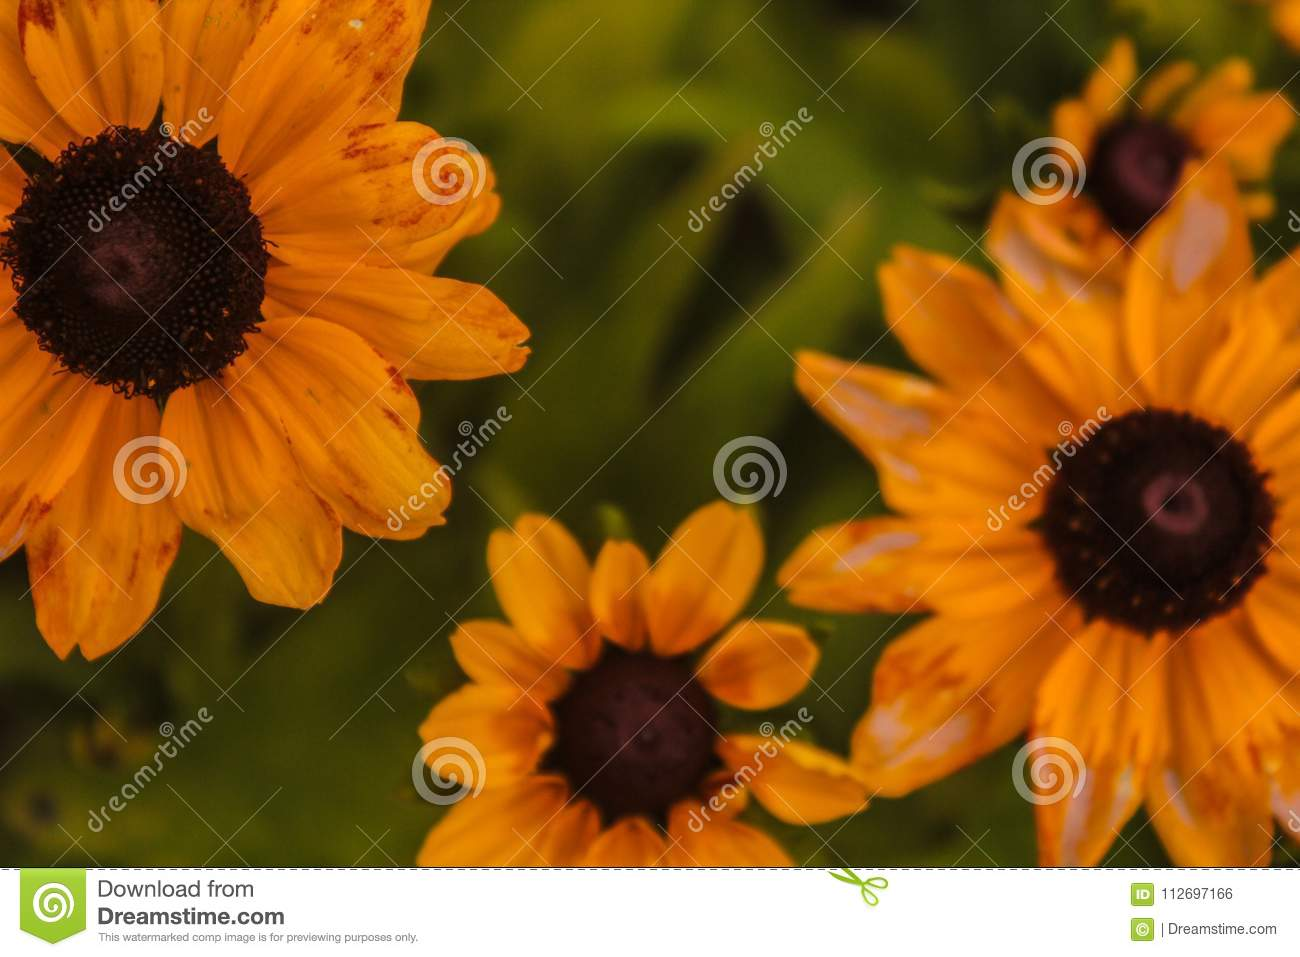 sunflowers wallpaper stock photo. image of cavalo, gramado - 112697166